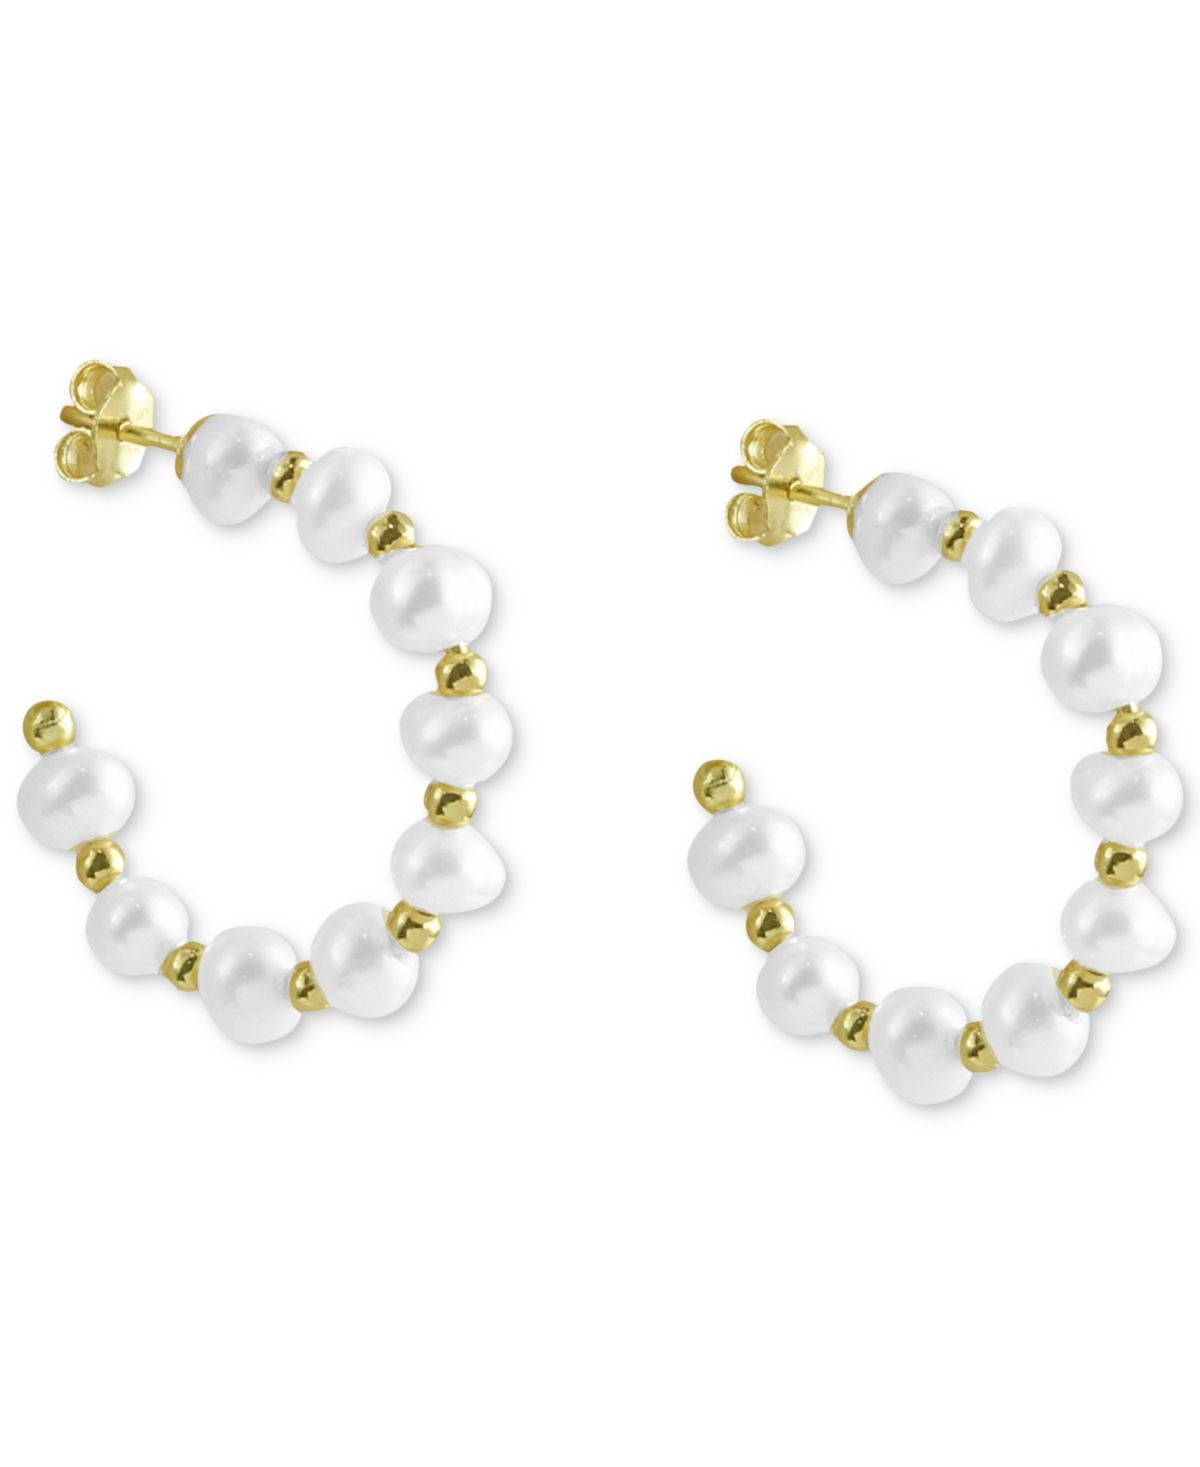 The soft glow of cultured freshwater pearls puts a feminine edge on these cultured freshwater pearl c-hoop earrings from Argento Vivo.